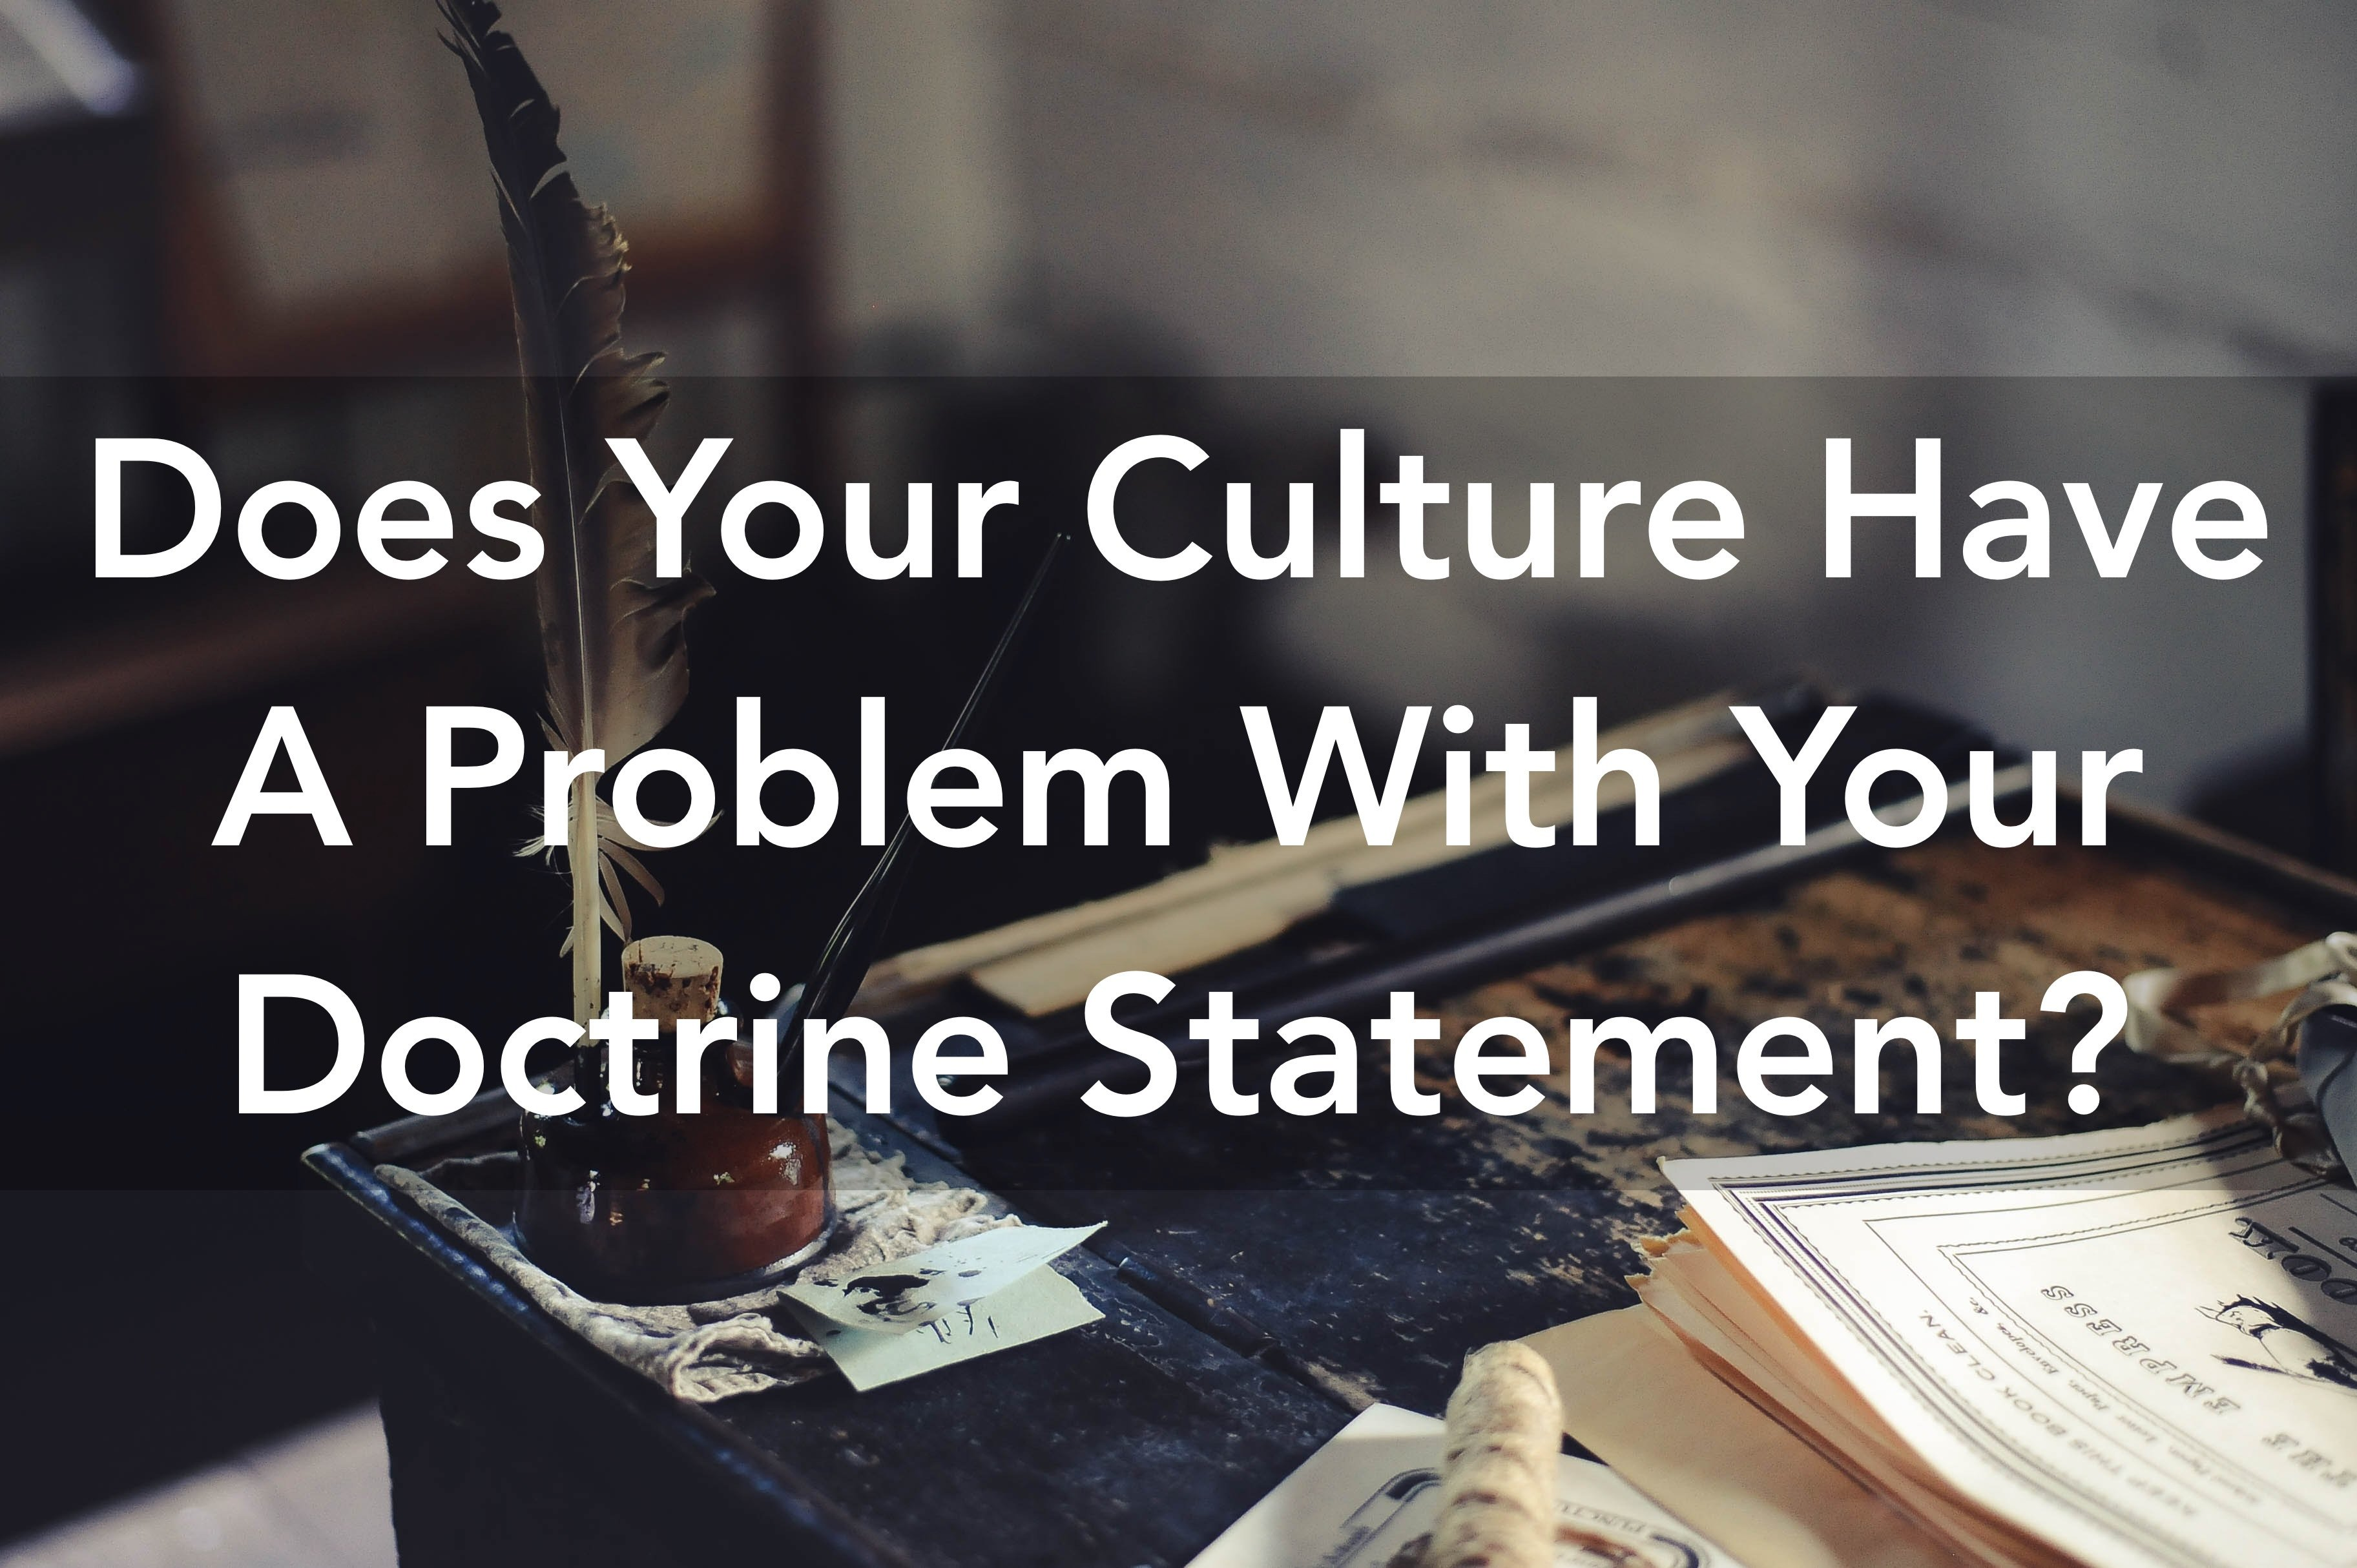 Does Your Culture Have A Problem With Your Doctrine Statement?